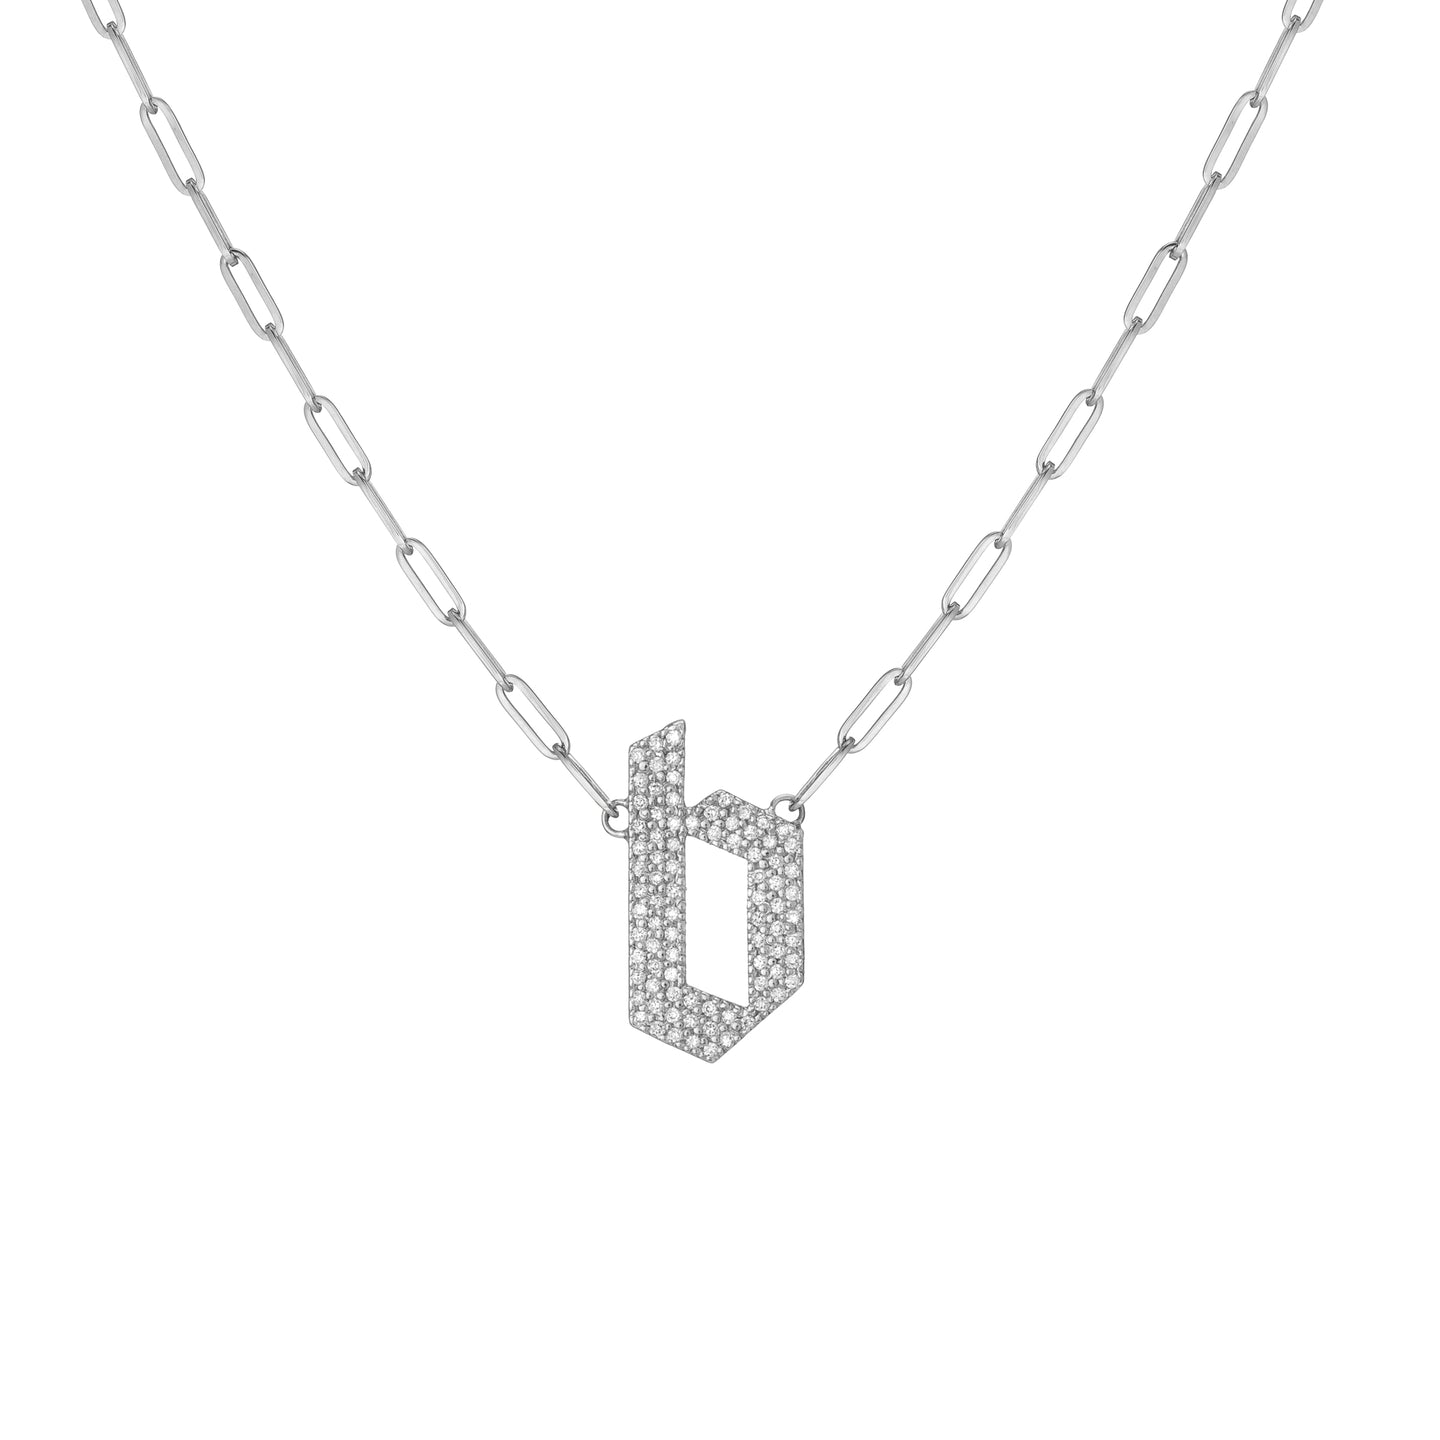 Medium Gothic Letter Pendant with Pave White Diamonds